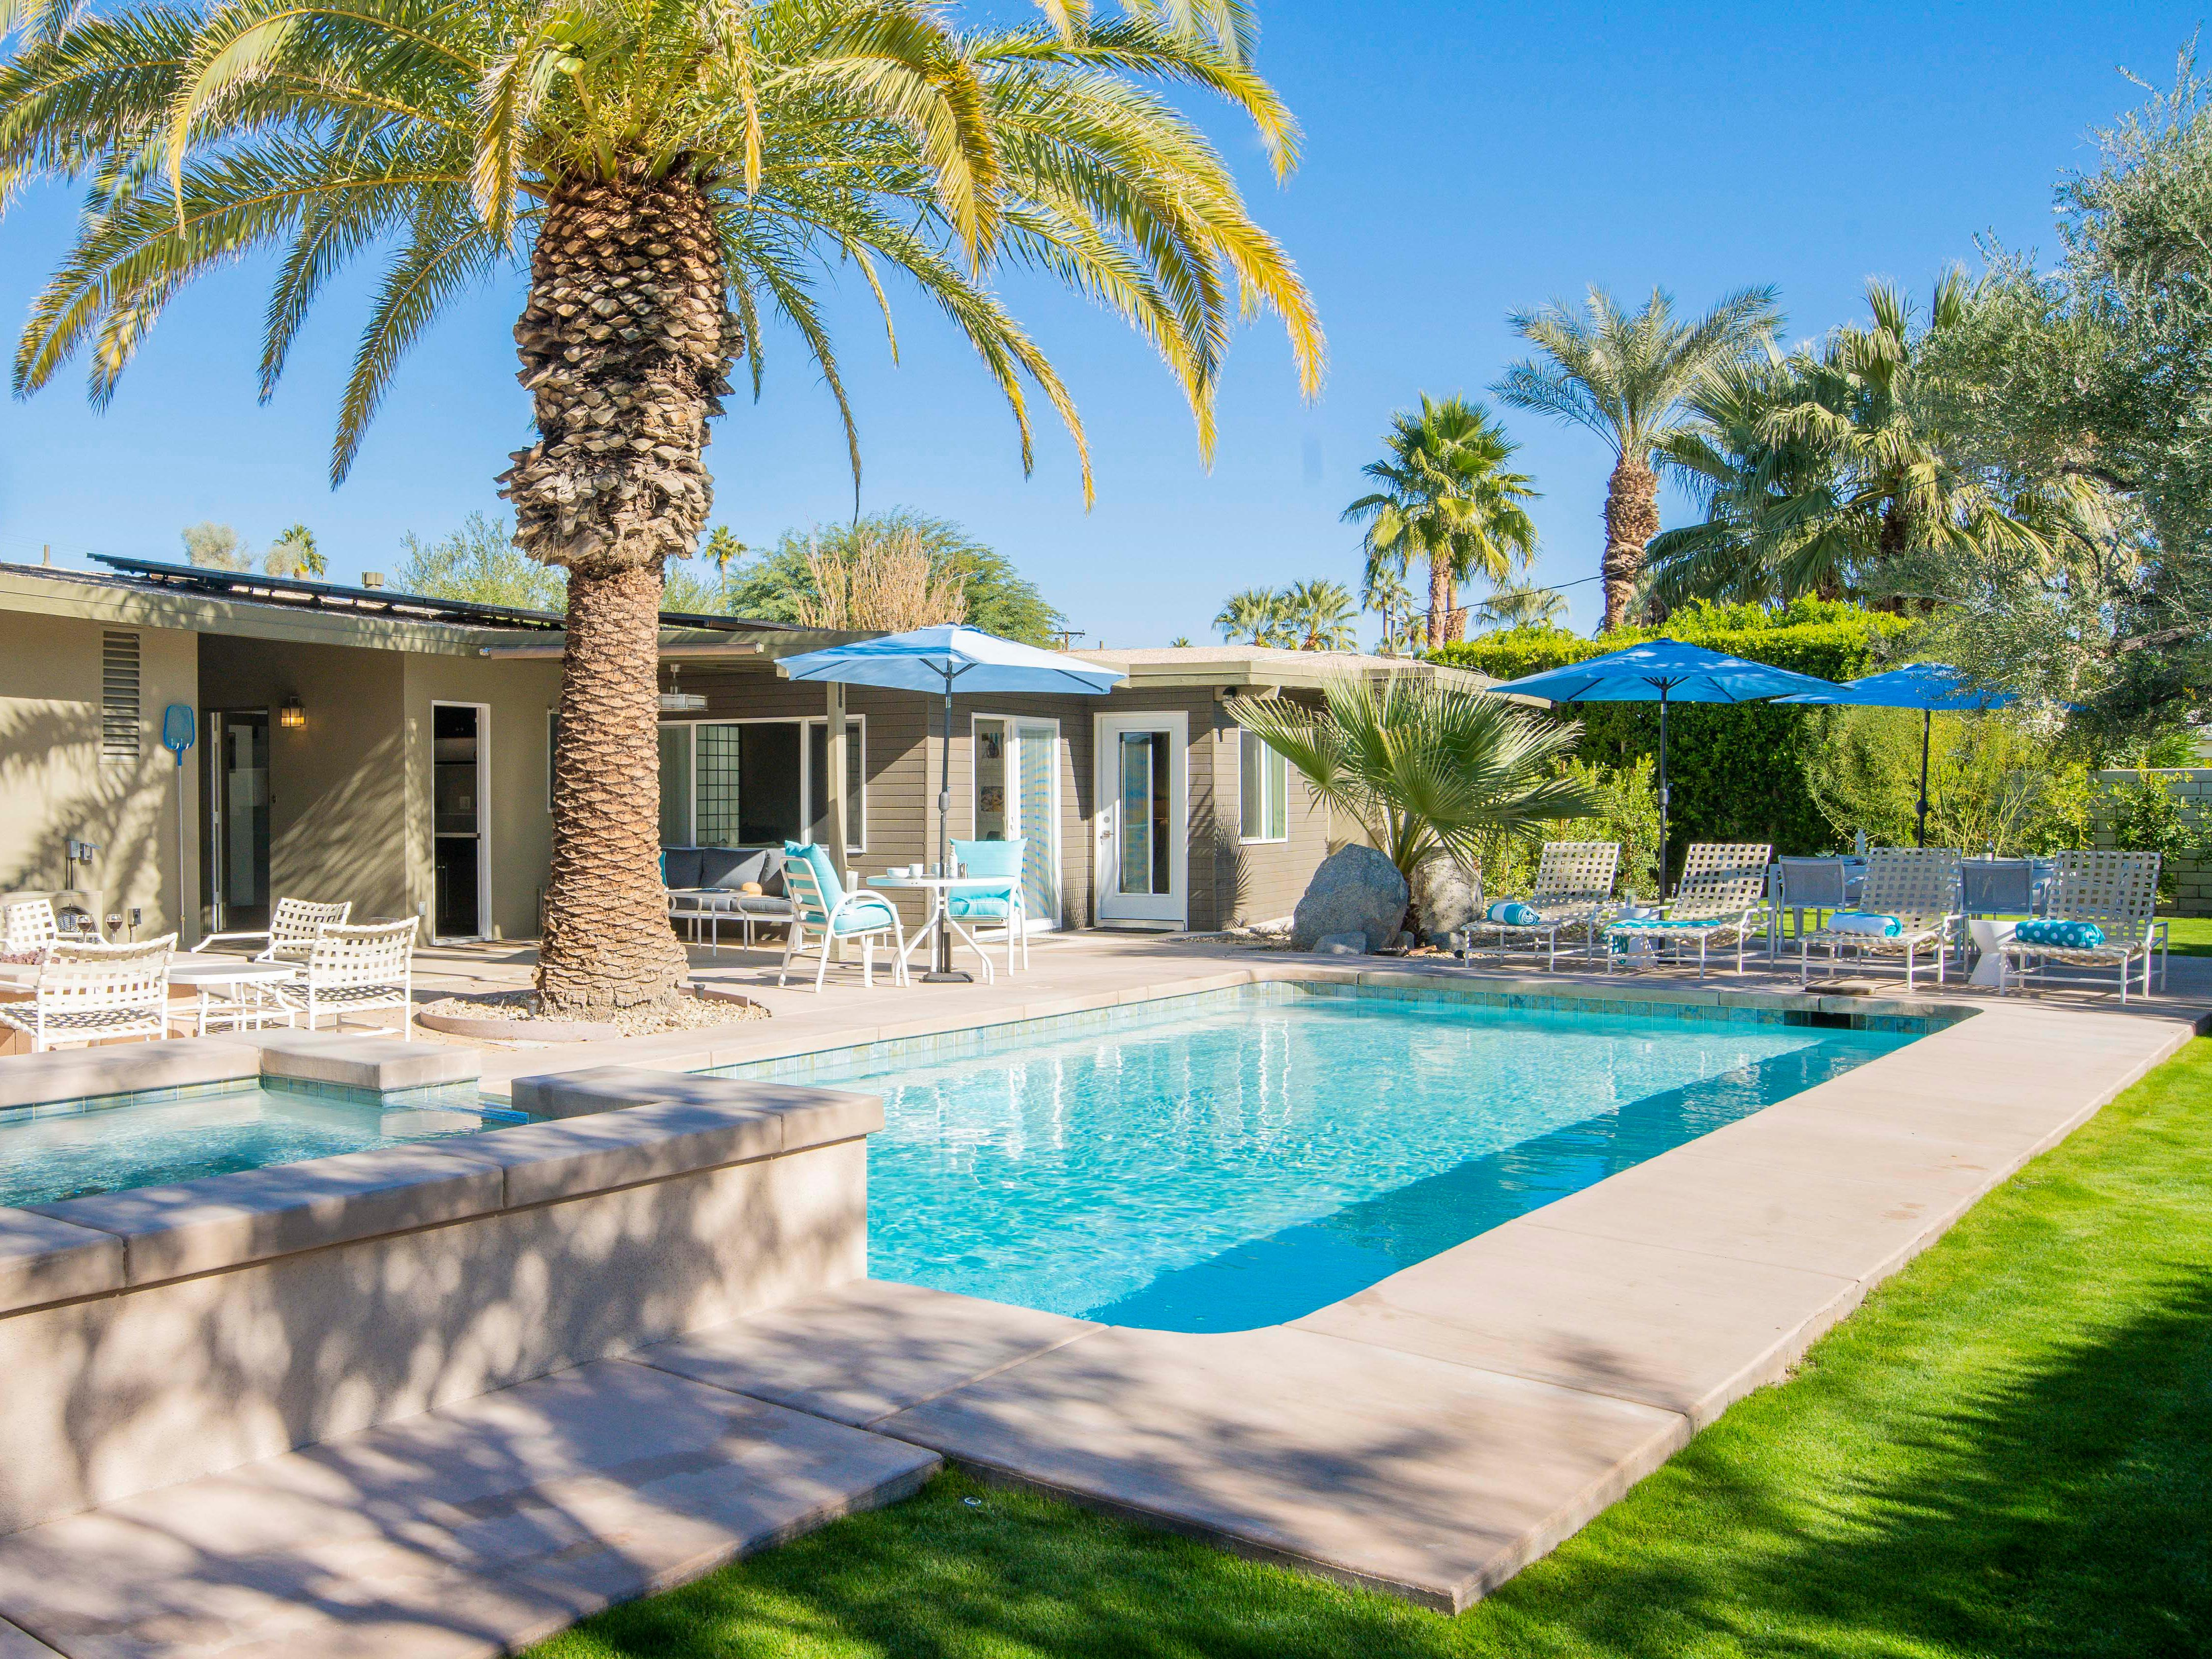 Property Image 1 - Inviting Retro Home in Palm Springs near Palm Canyon Dr.